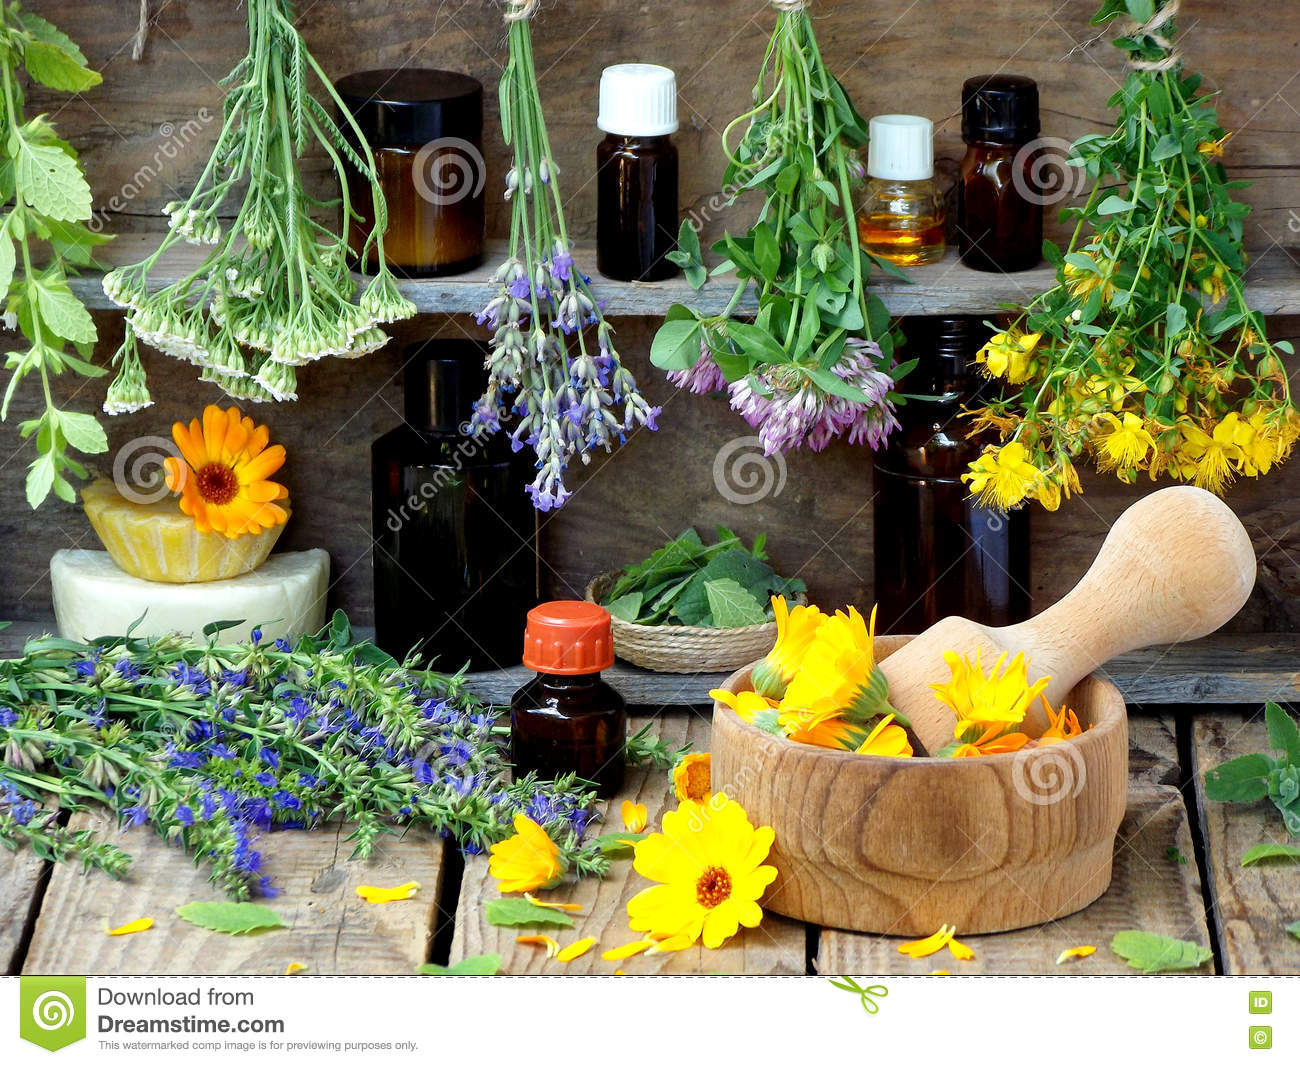 Bunches Of Healing Herbs - Mint, Yarrow, Lavender, Clover, Hyssop